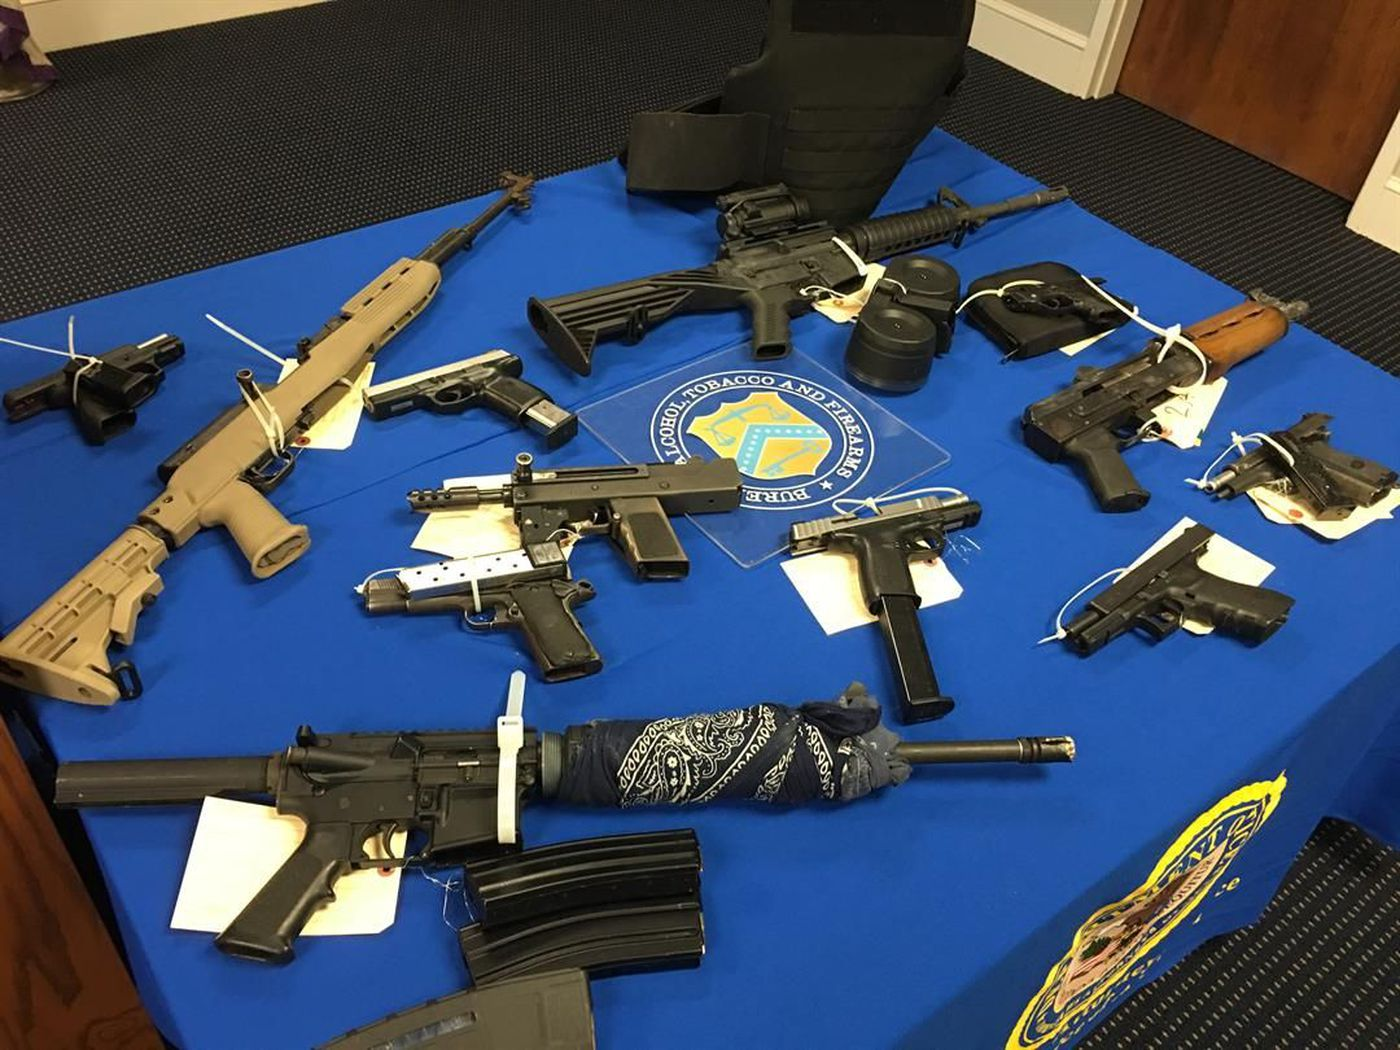 15 in River Region indicted for federal gun crimes